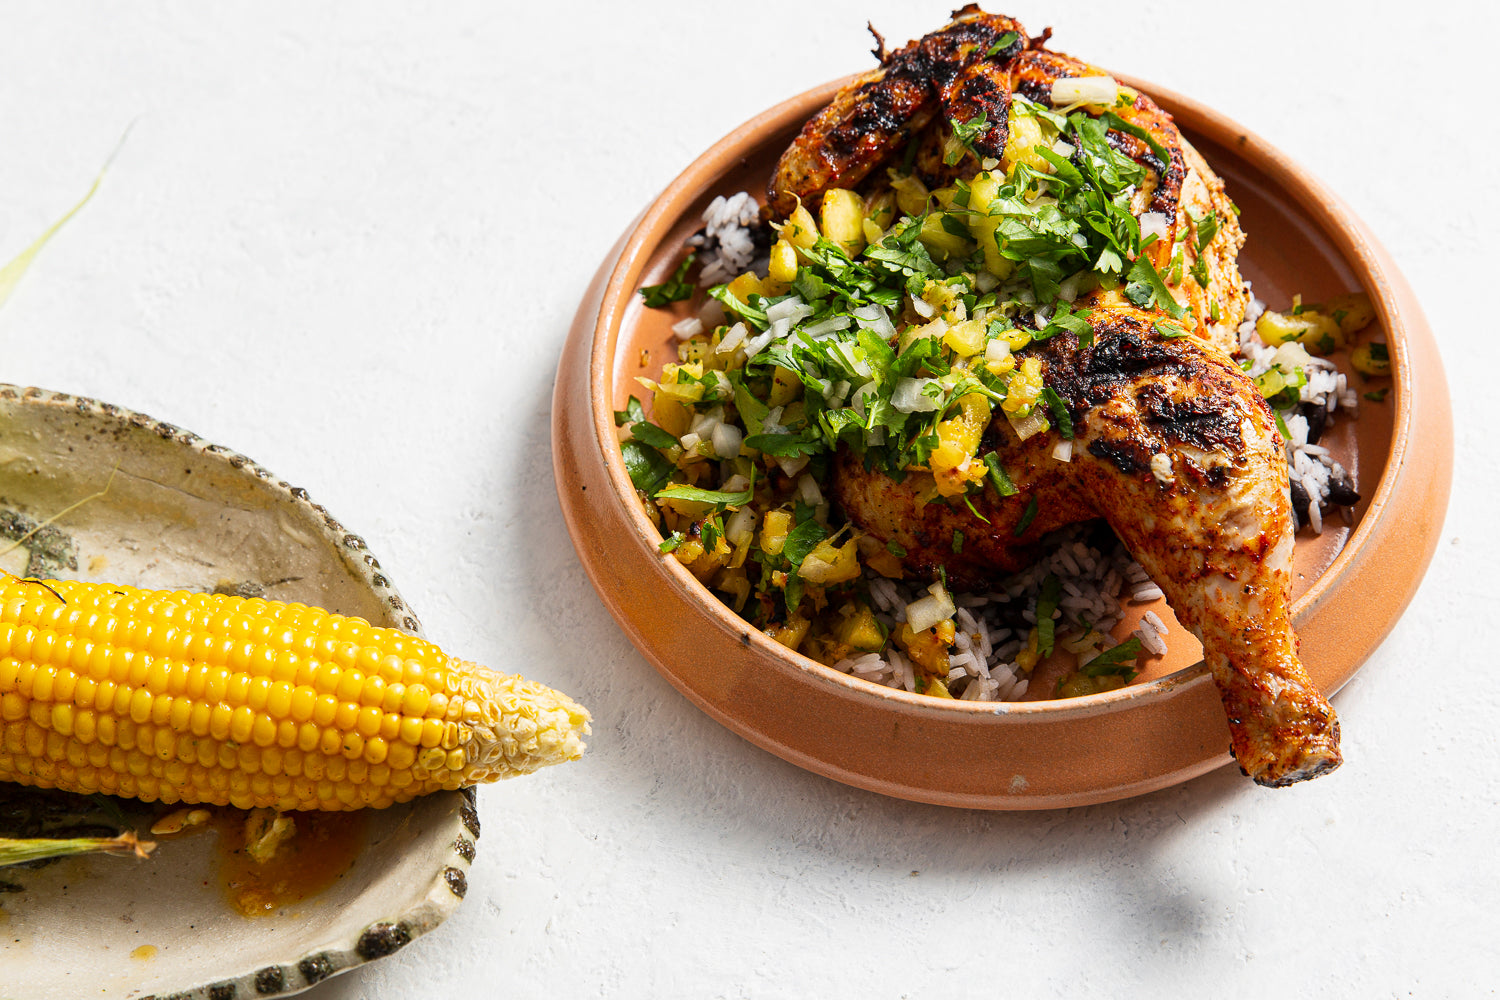 Yucatan Chicken, black beans, rice, pineapple salsa